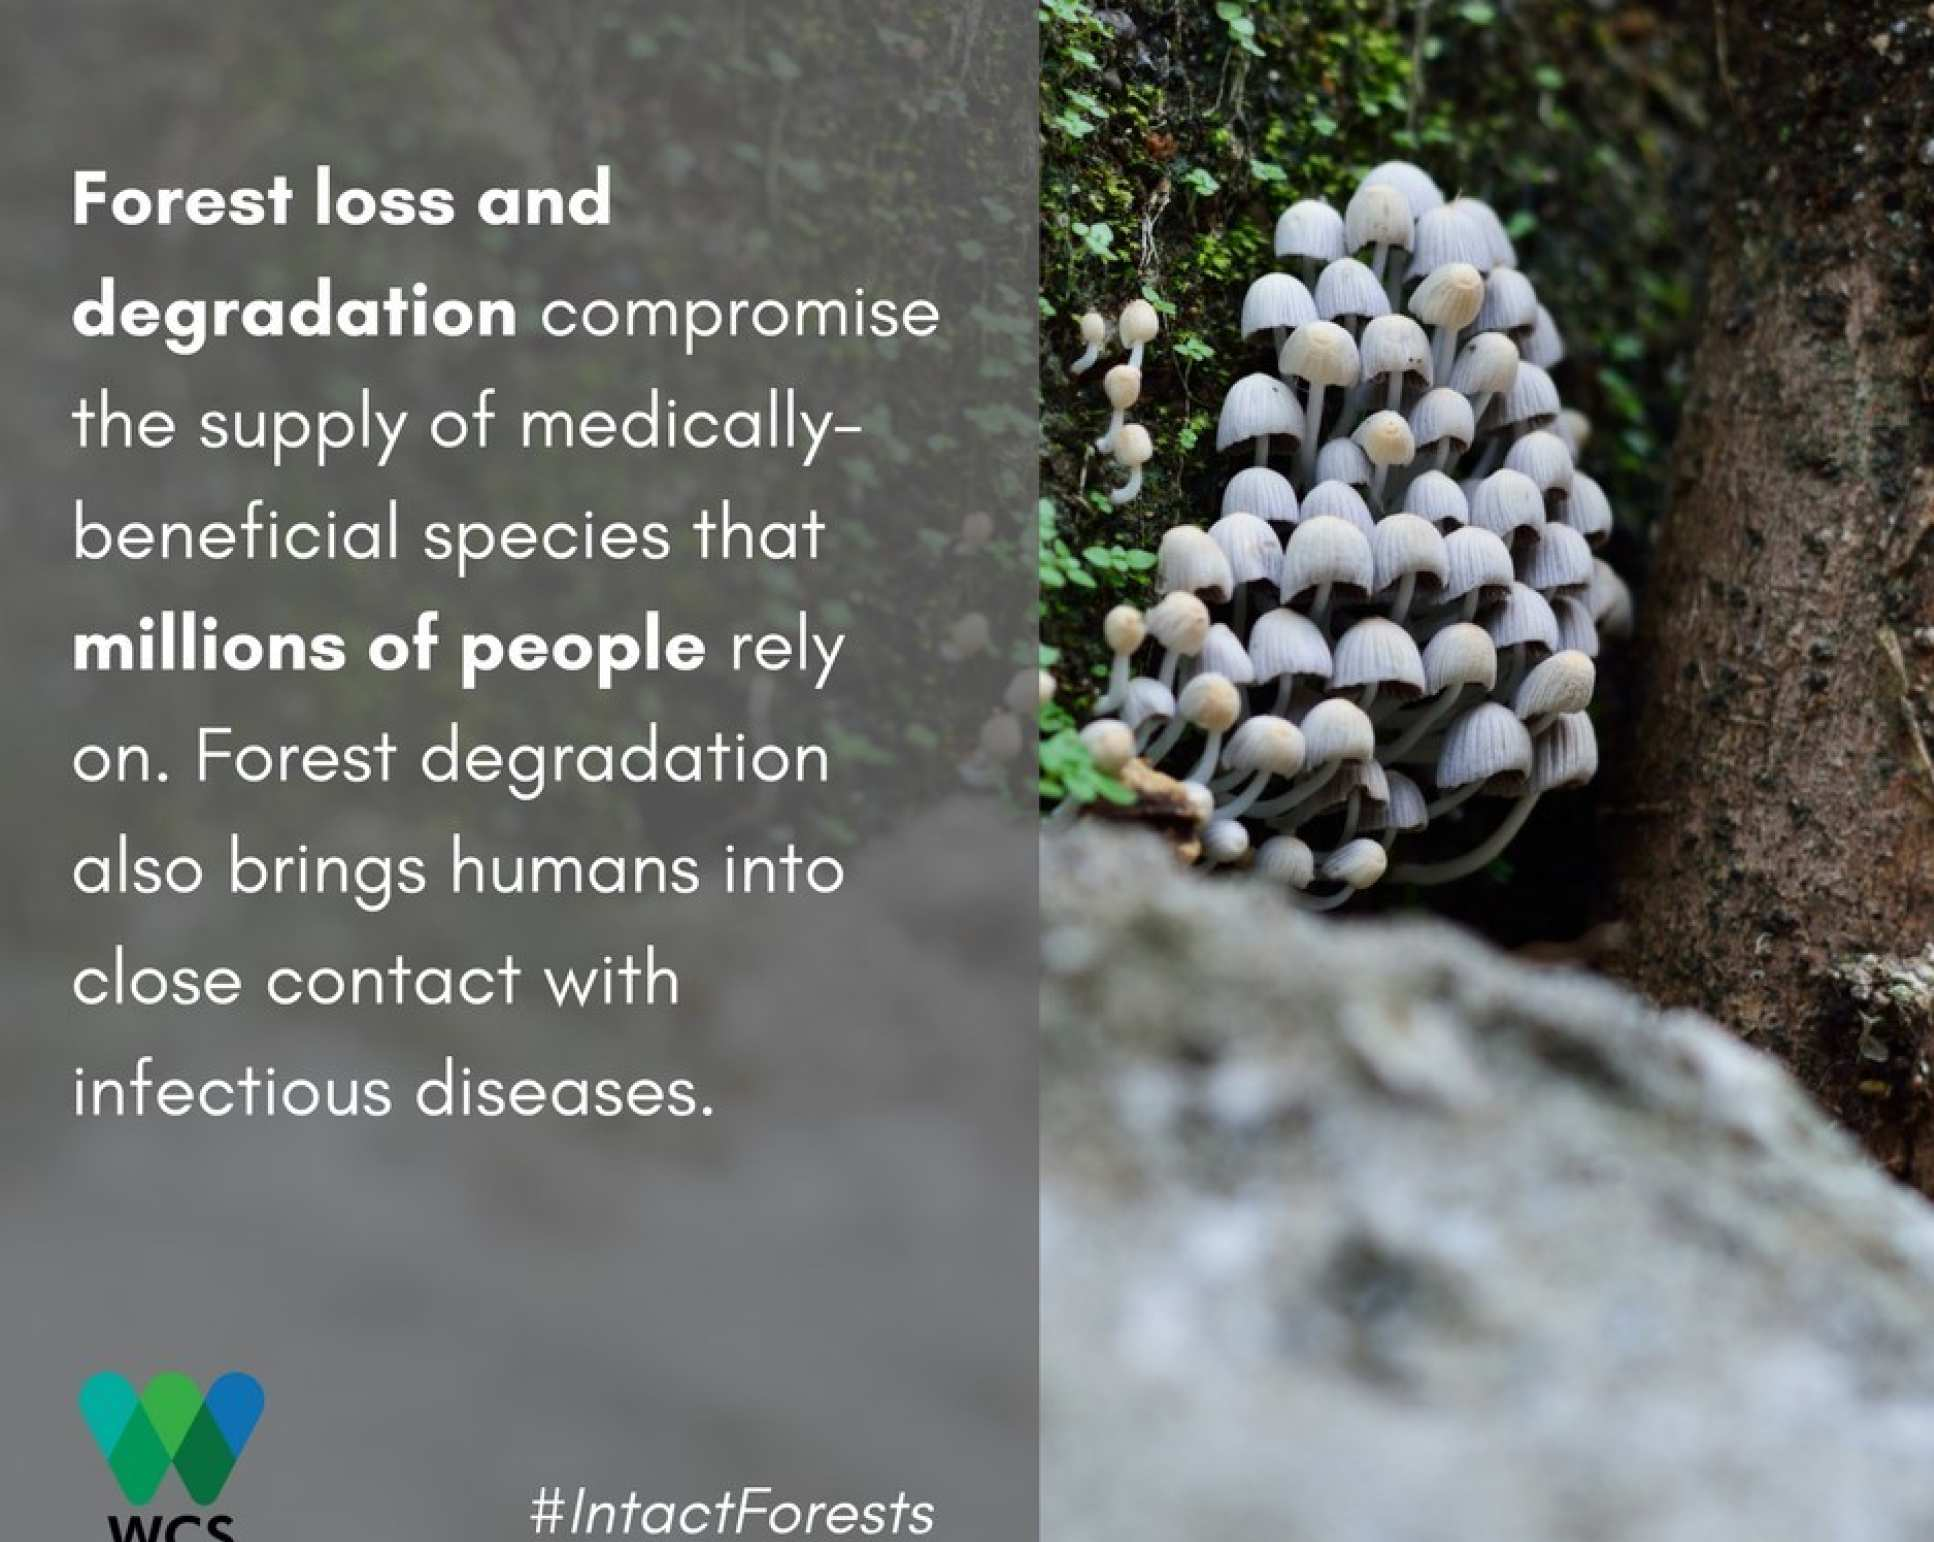 Image of mushrooms with caption: Forest loss and degradation compromise the supply of medically beneficial species that millions of people rely on. Forest degradation also brings humans into close contact with infectious diseases.